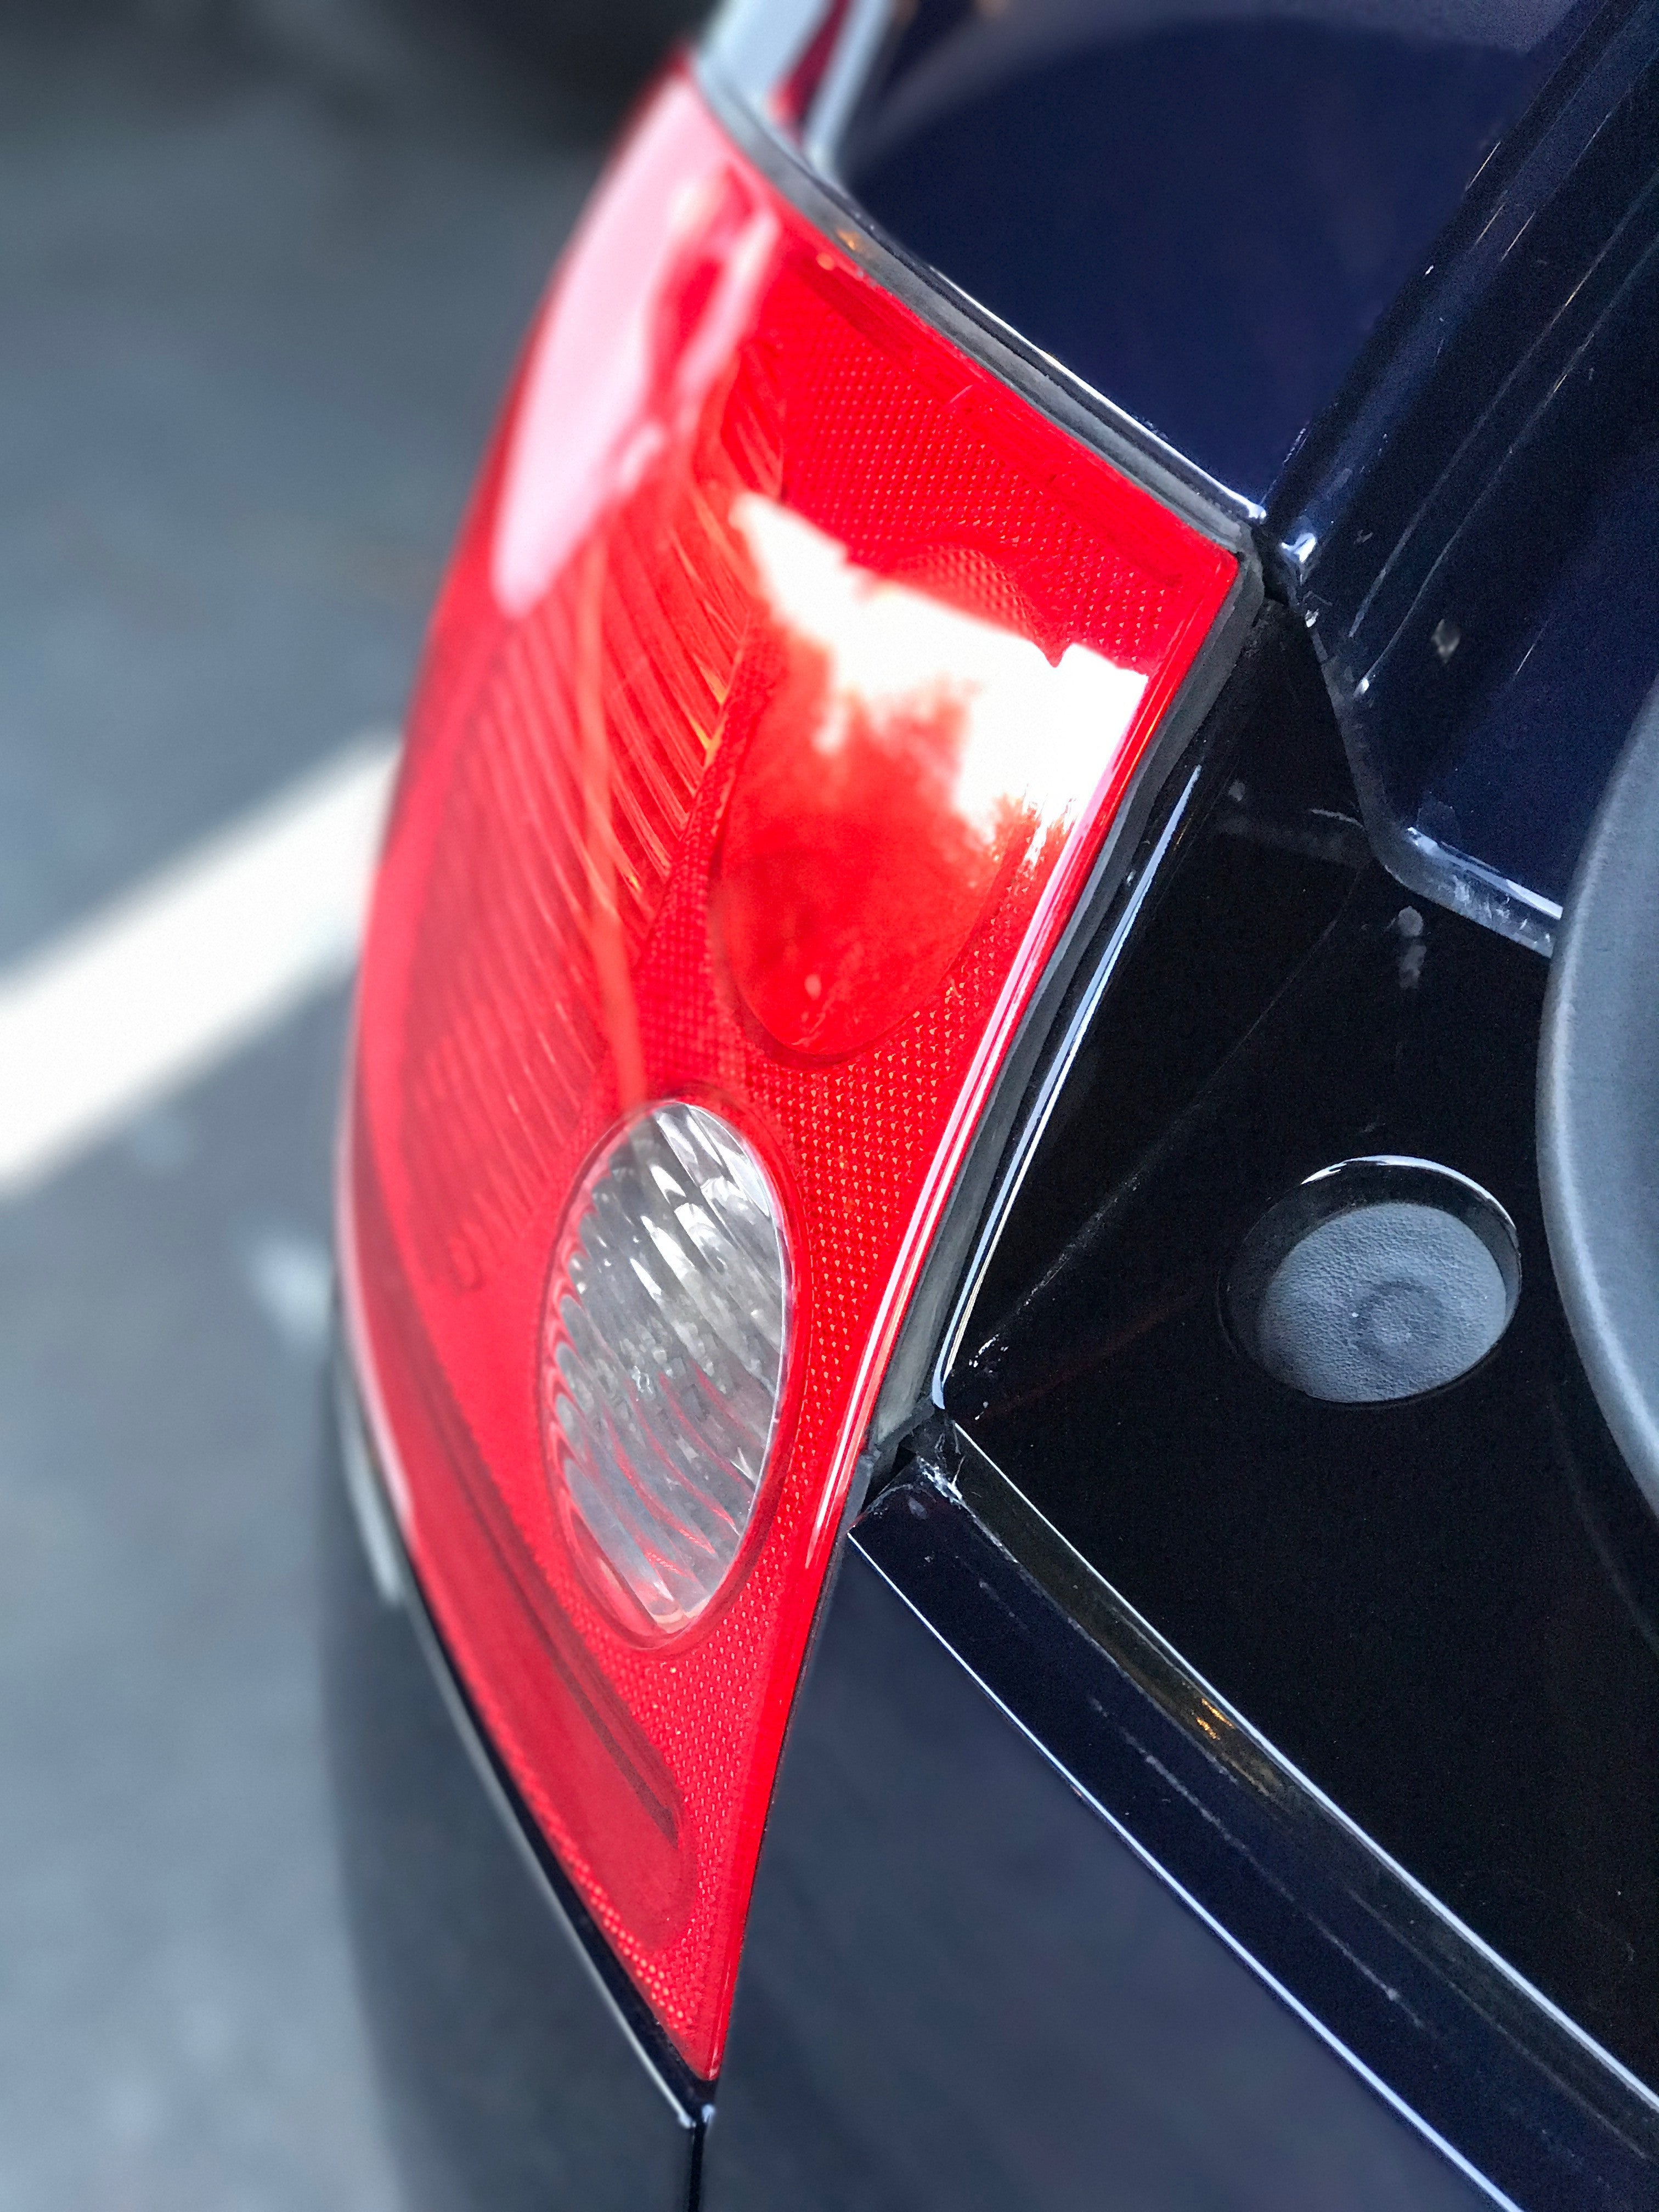 Audi TT MK1 Replacement Tail Light Seals